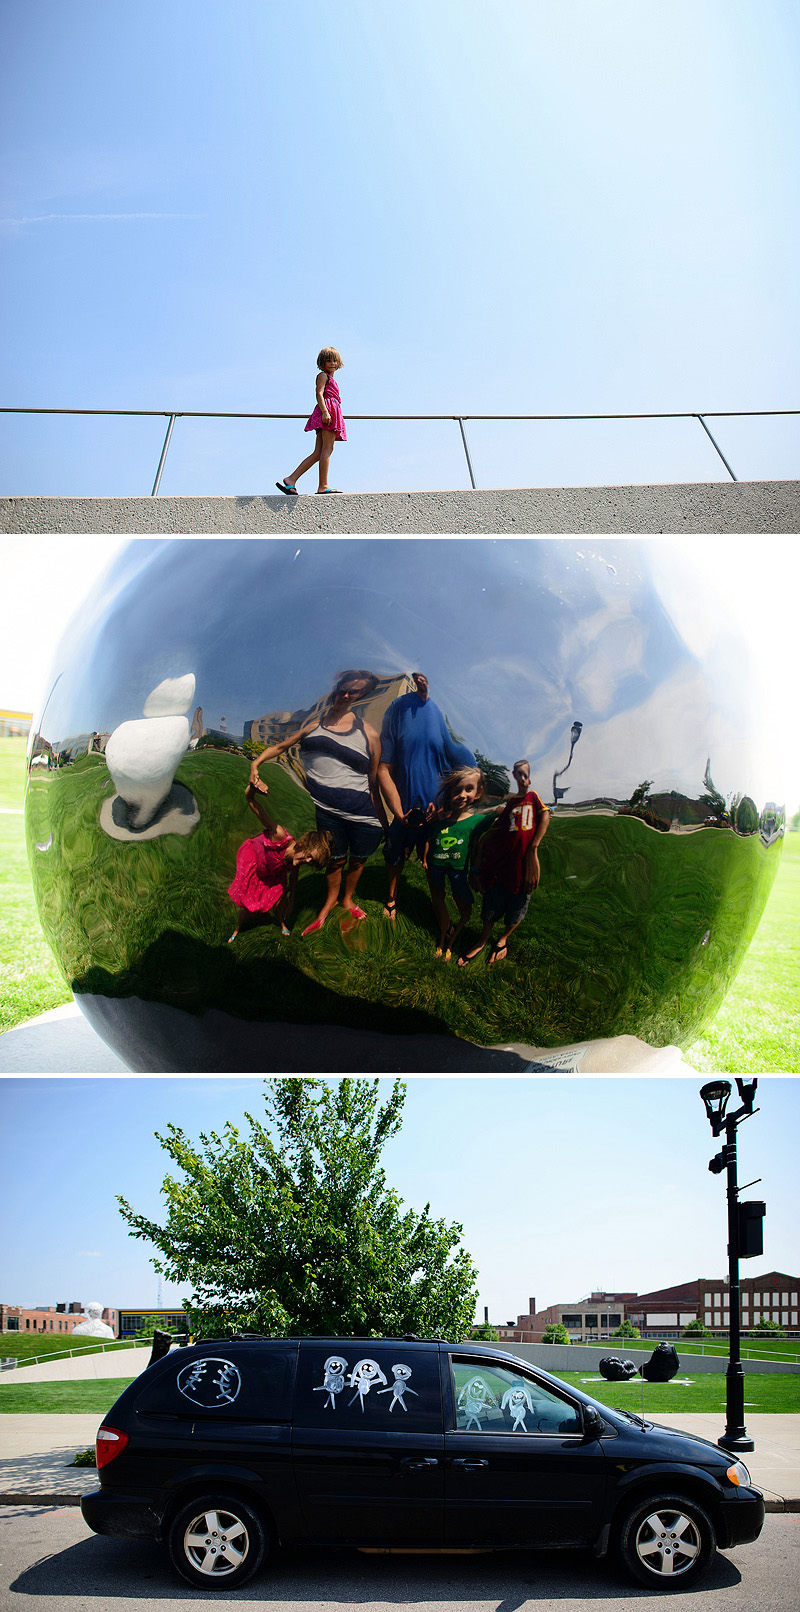 Family fun at Pappajohns Sculpture Park in Des Moines.